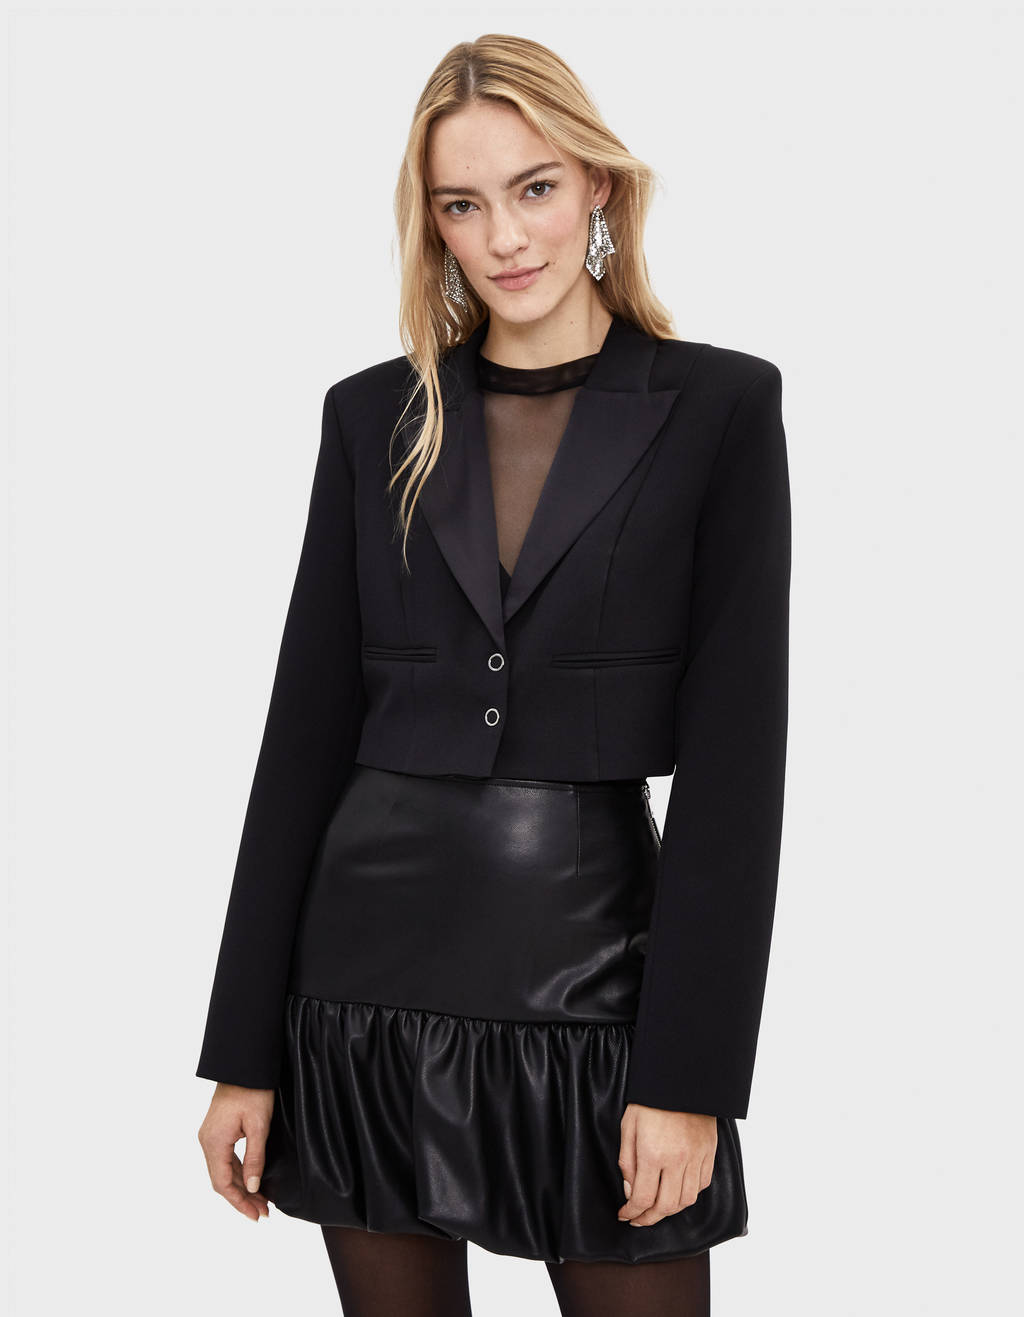 Cropped blazer with shoulder pads